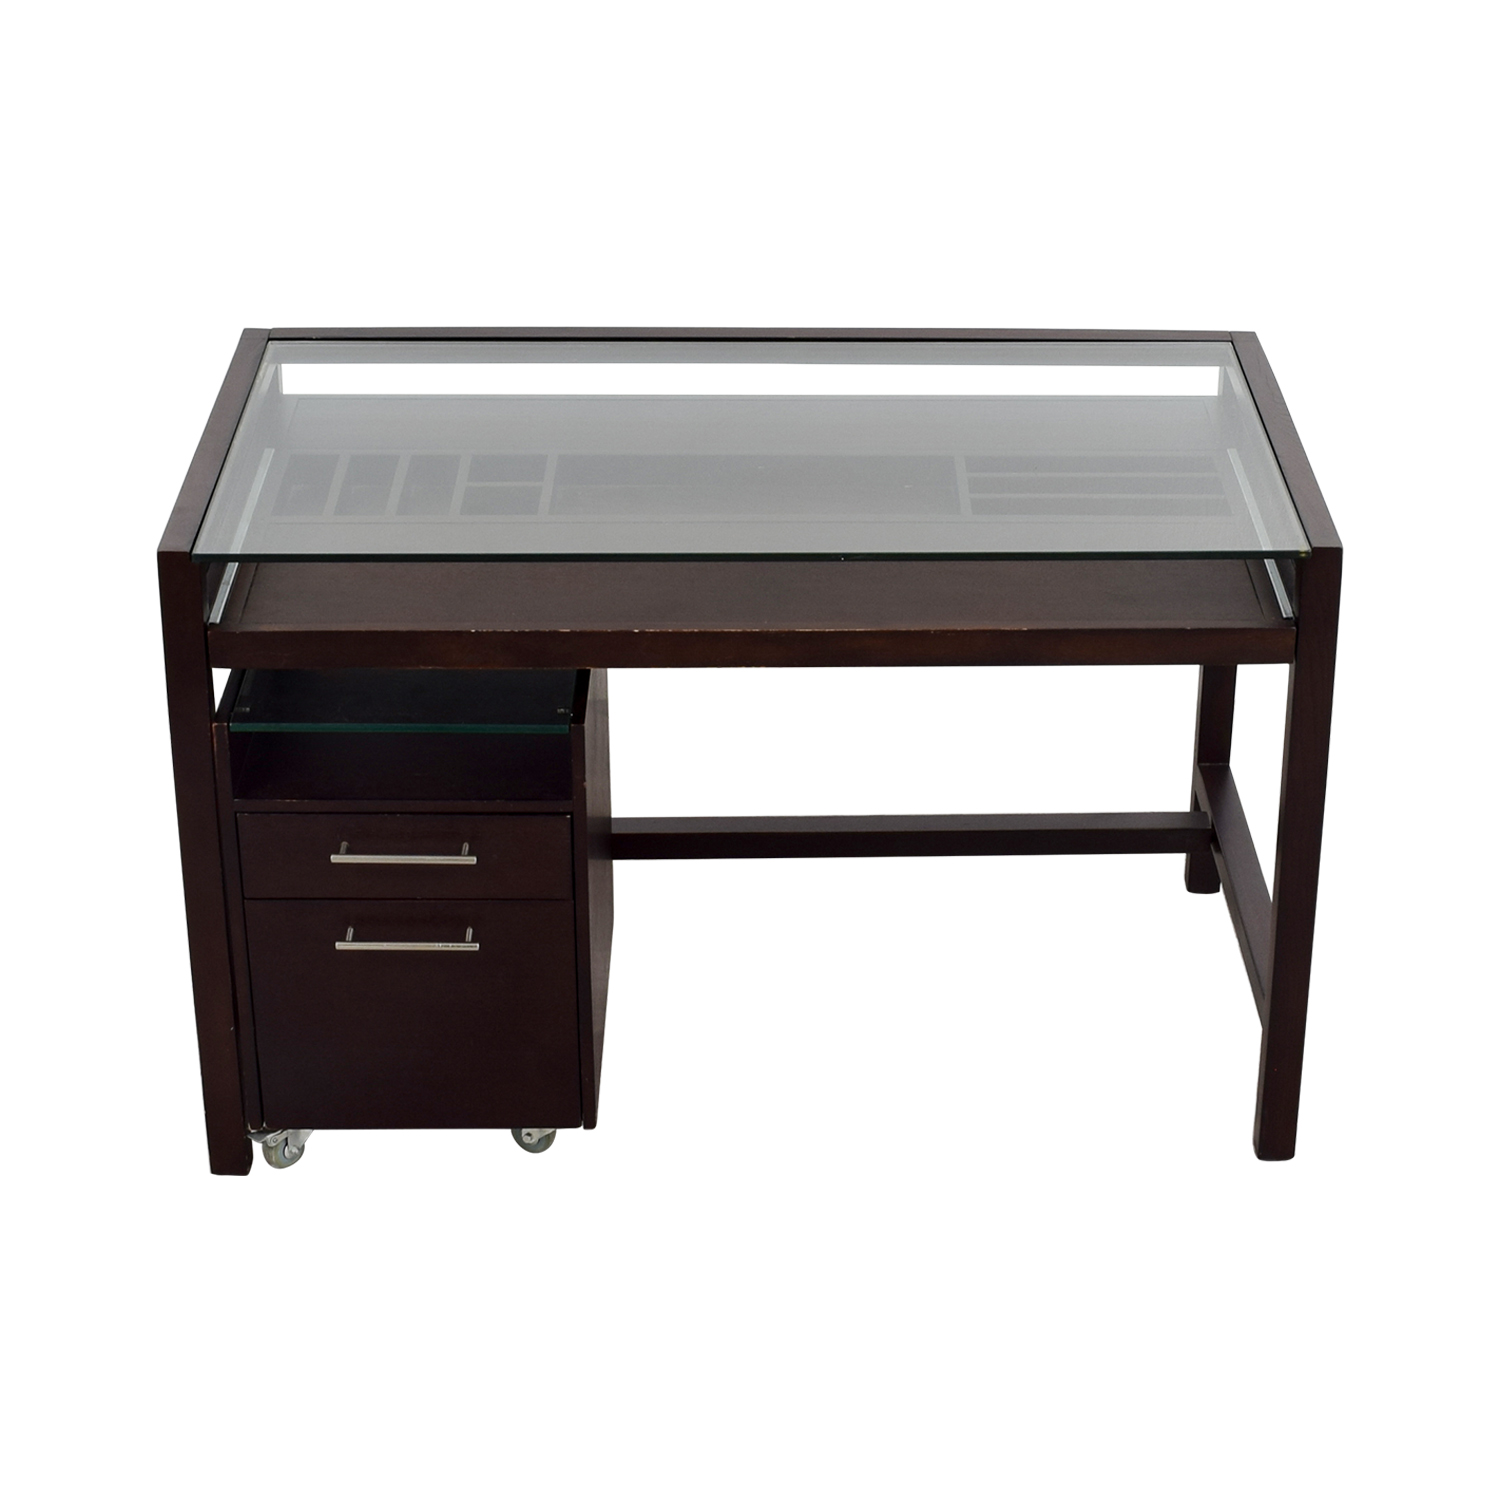 55 off glass top dark brown wood desk with file cabinet